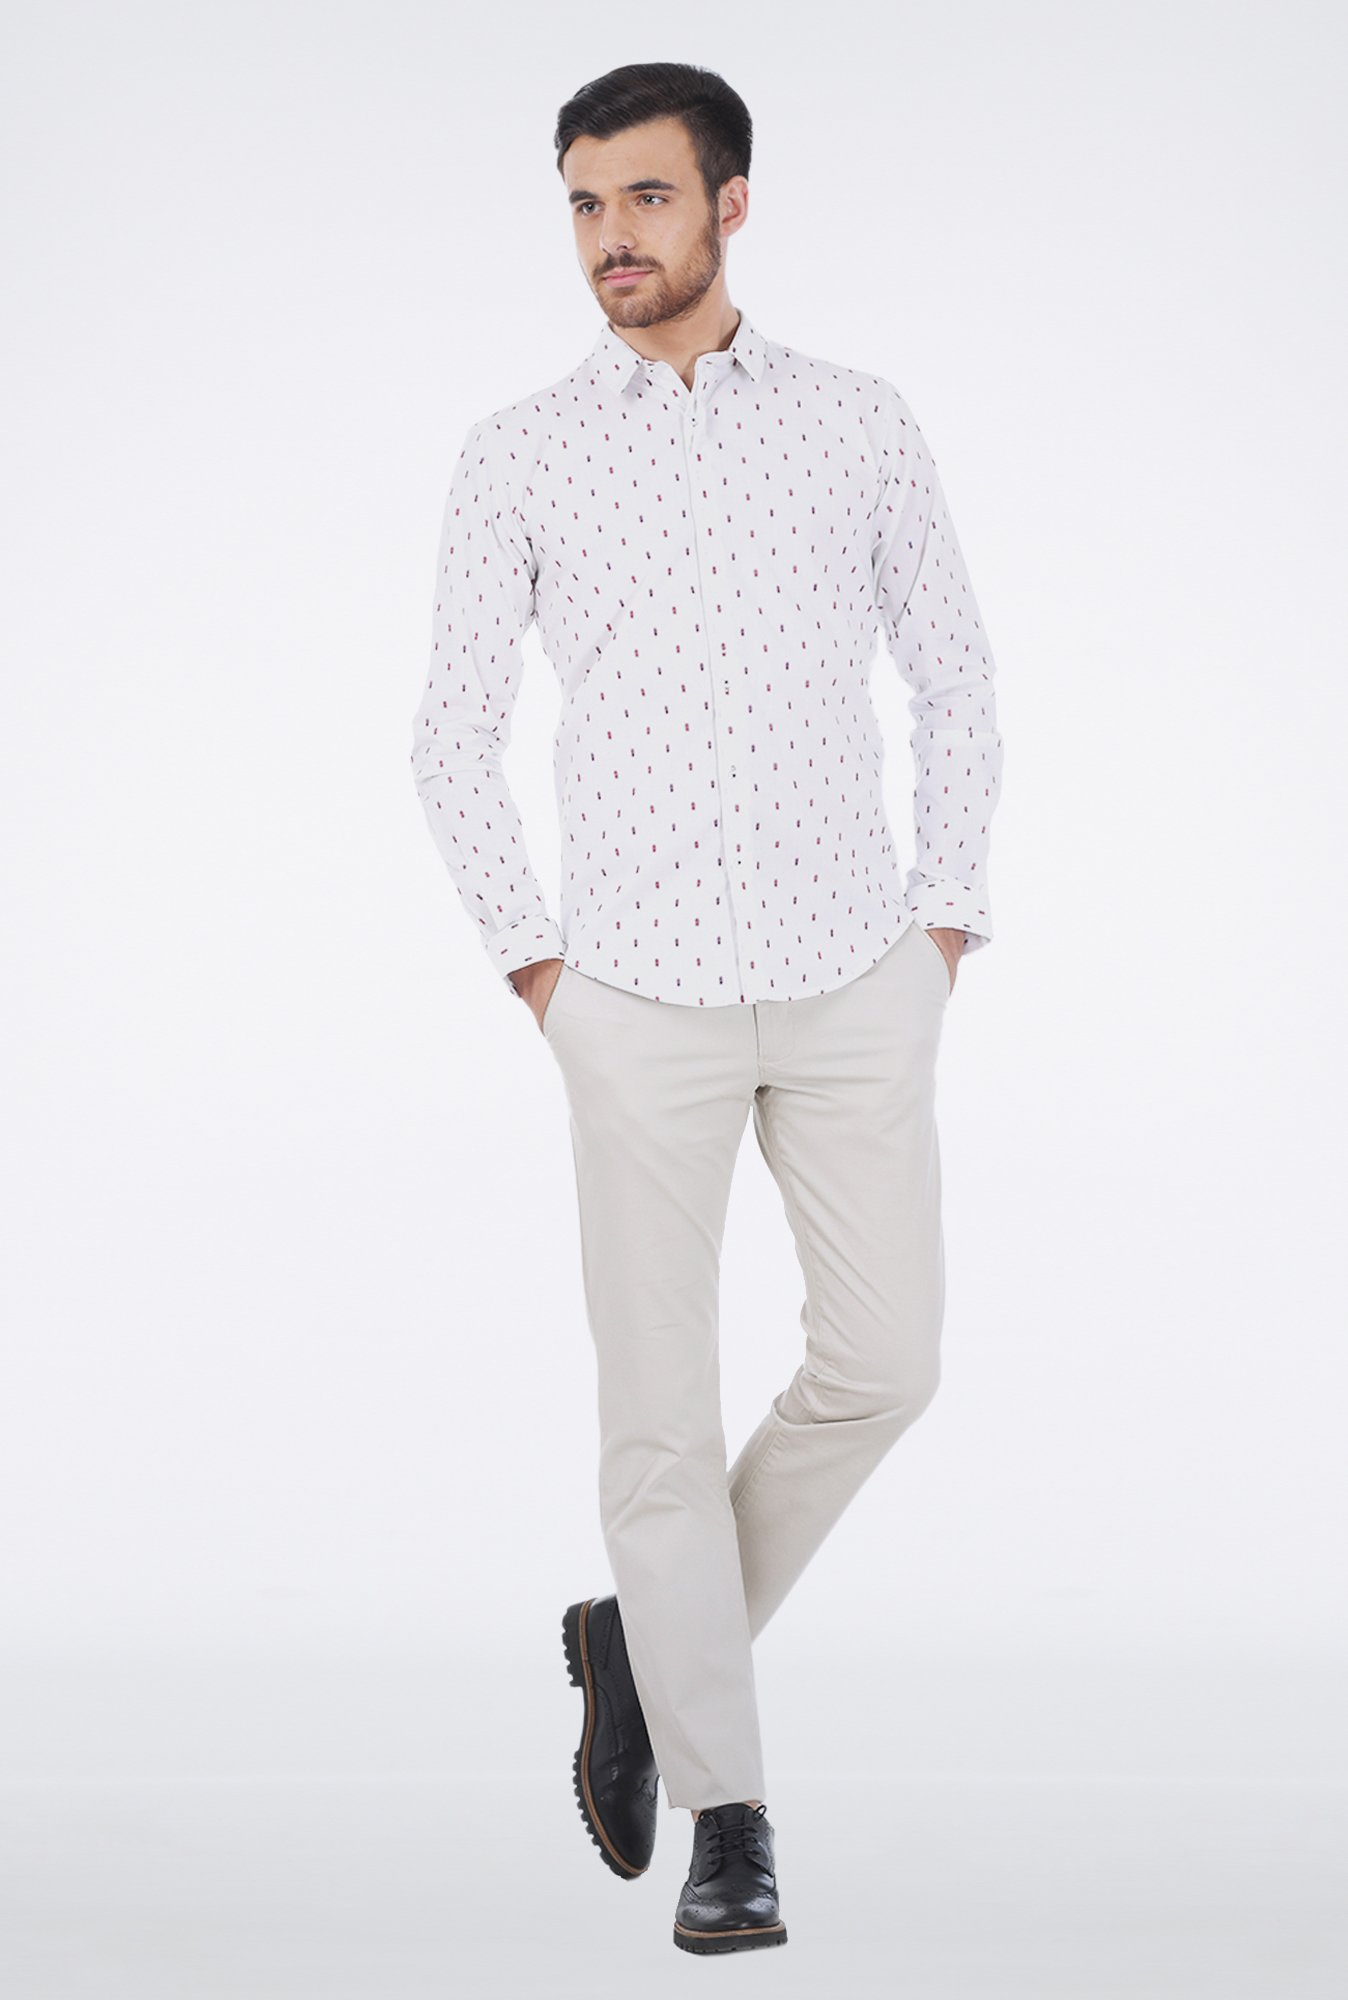 Basics White Jacquard Shirt